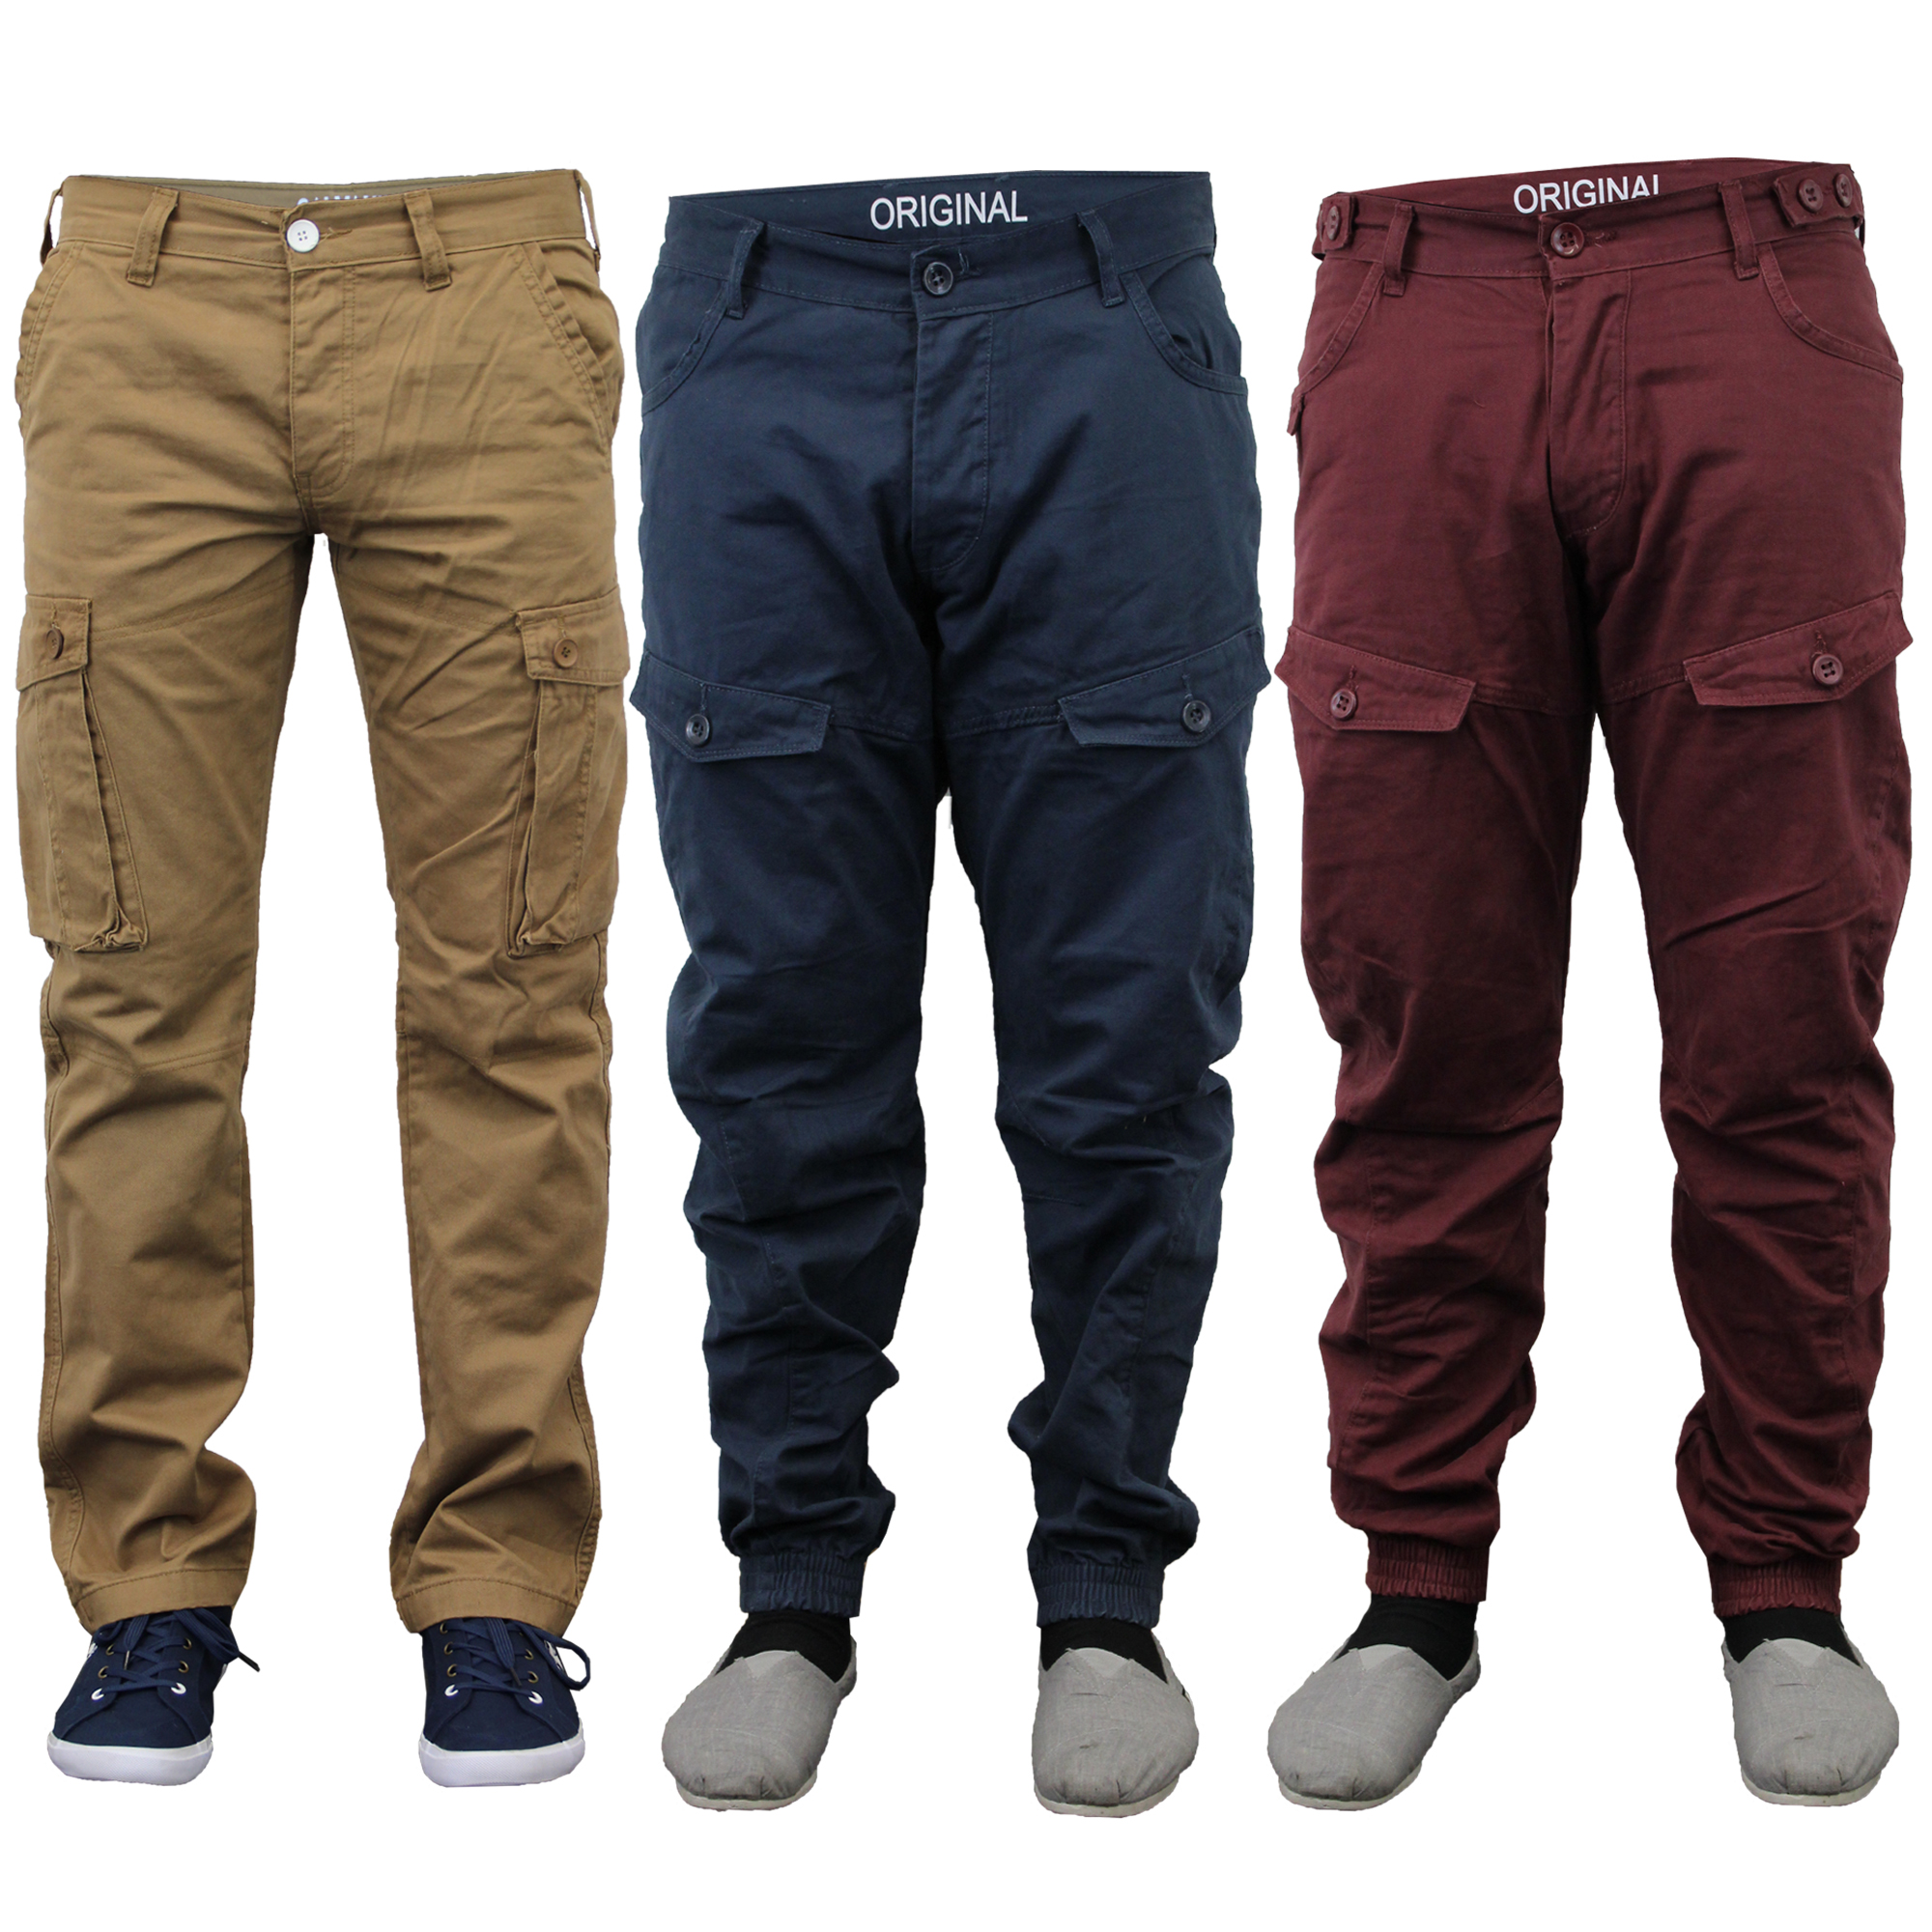 Mens Jeans Chino Style Cargo Pants Denim Cuffed Bottoms Twisted ...